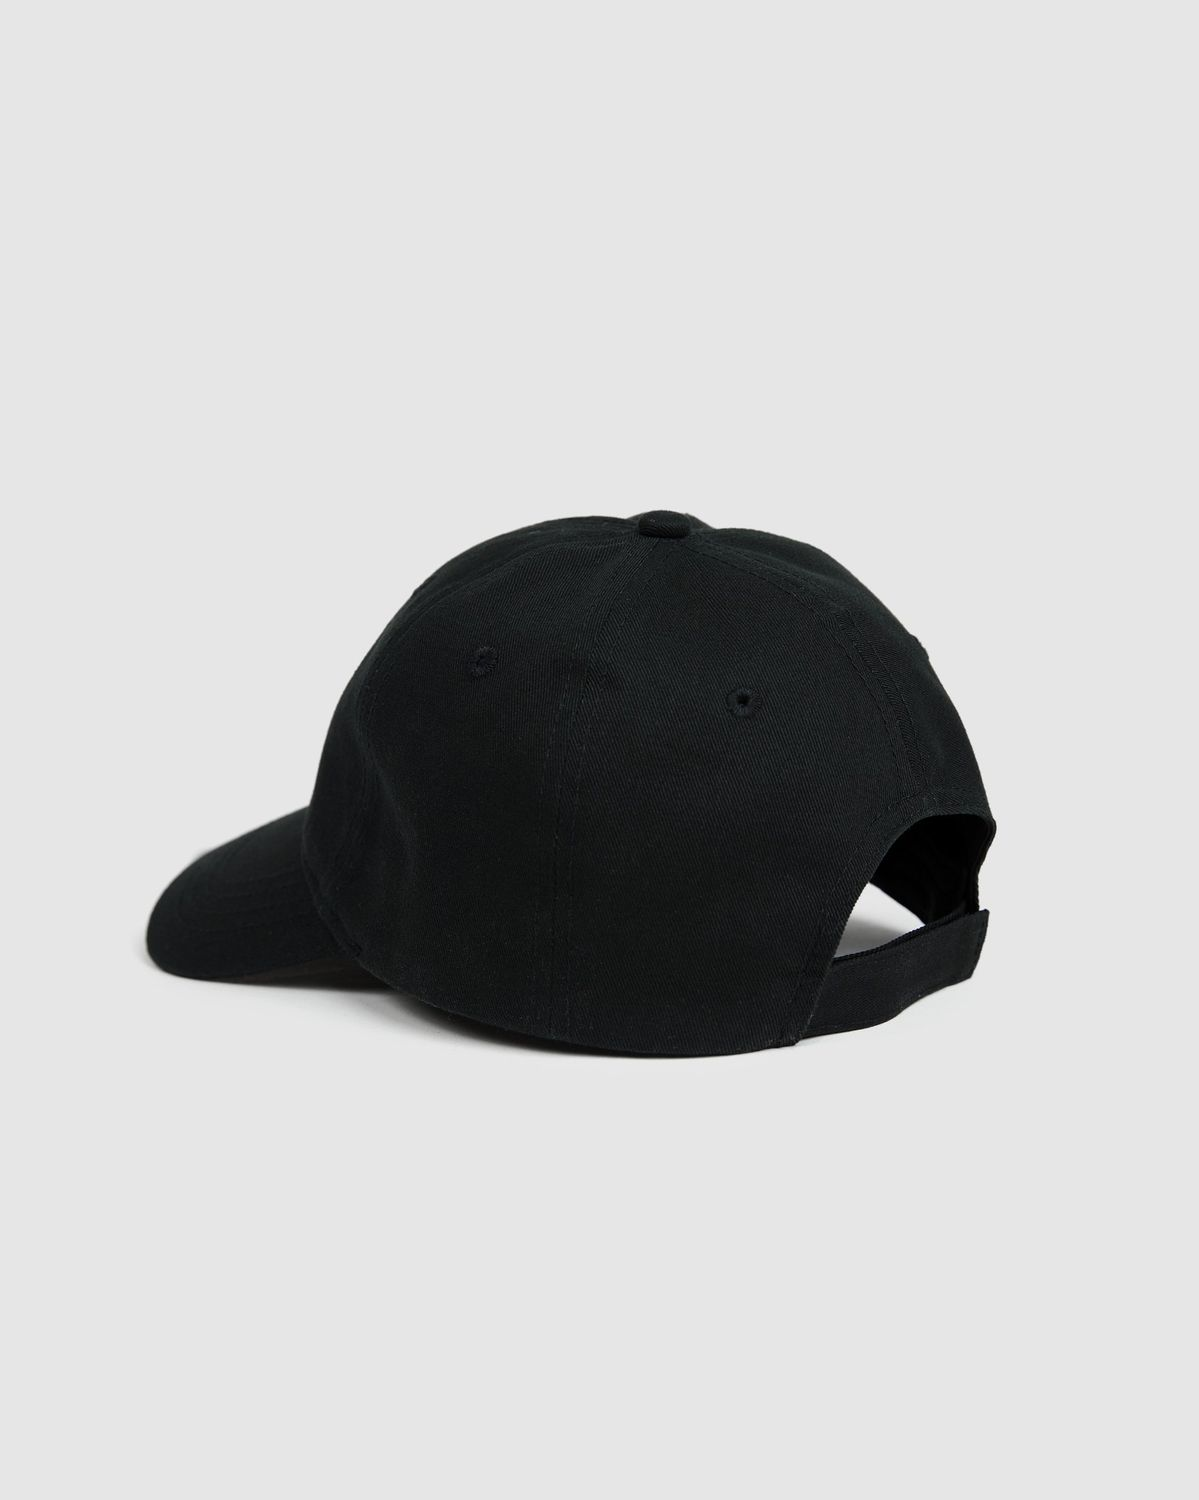 Colette Mon Amour x Soulland -  Snoopy Bed Black Baseball Cap - Image 2